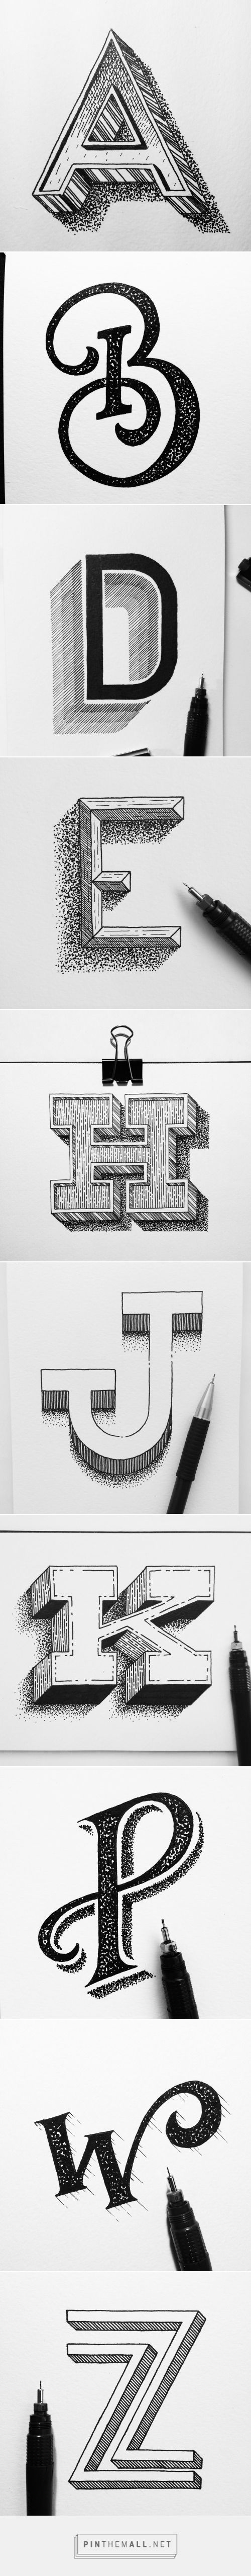 HAND DRAWN LETTERS... > Hand Made Letters by Memo Vigil